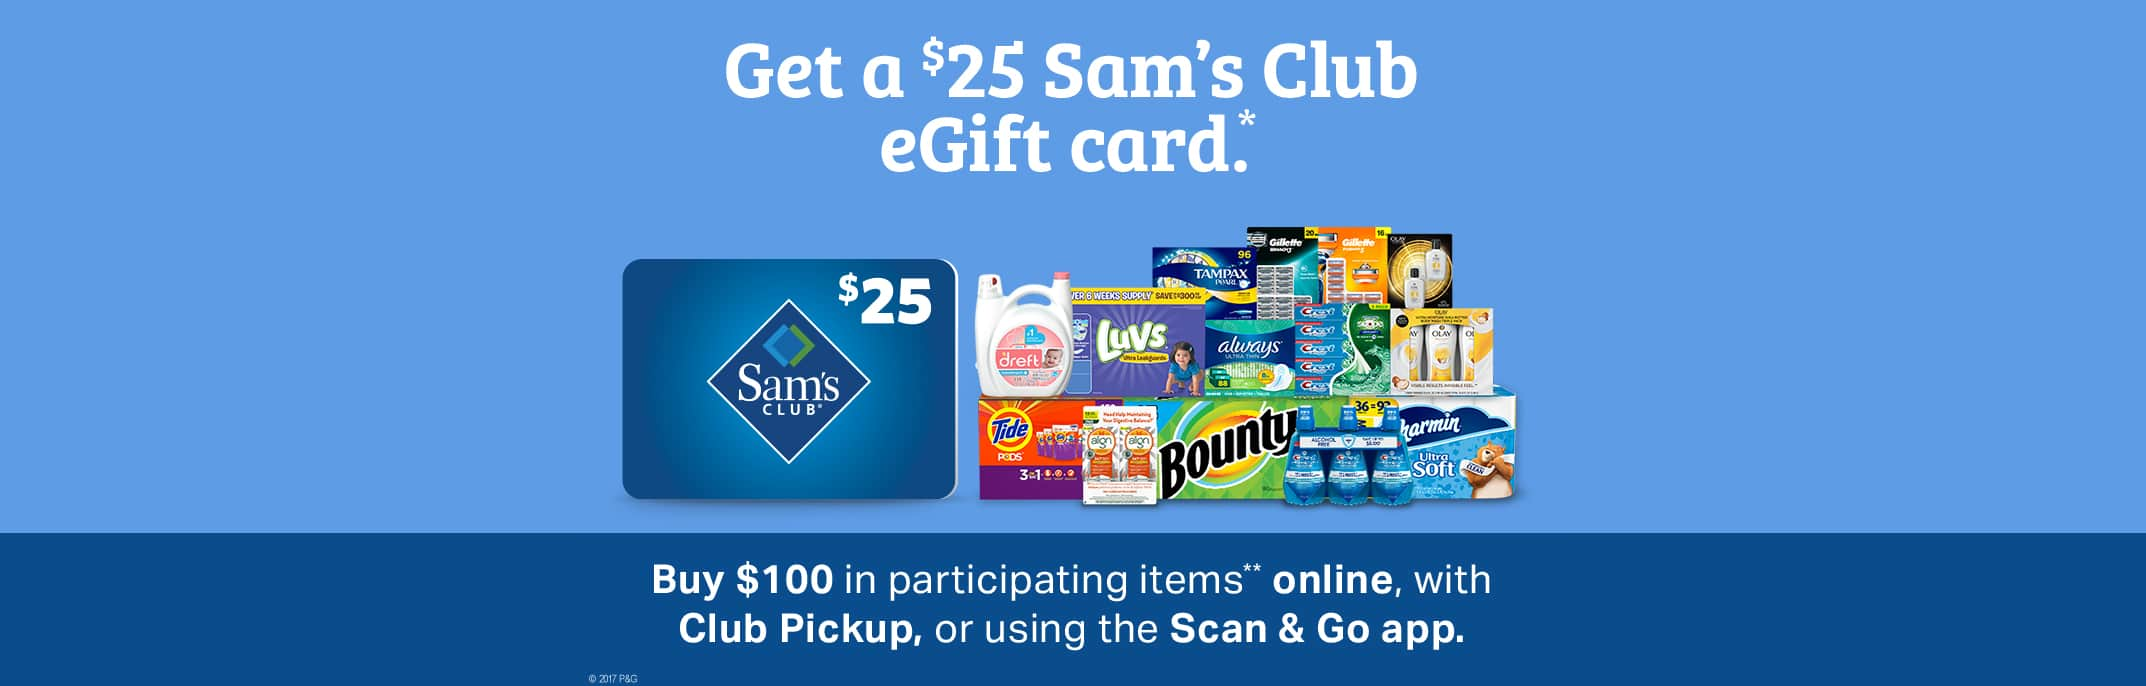 Get 25$ Sams CLub eGift Card on $100 purchase